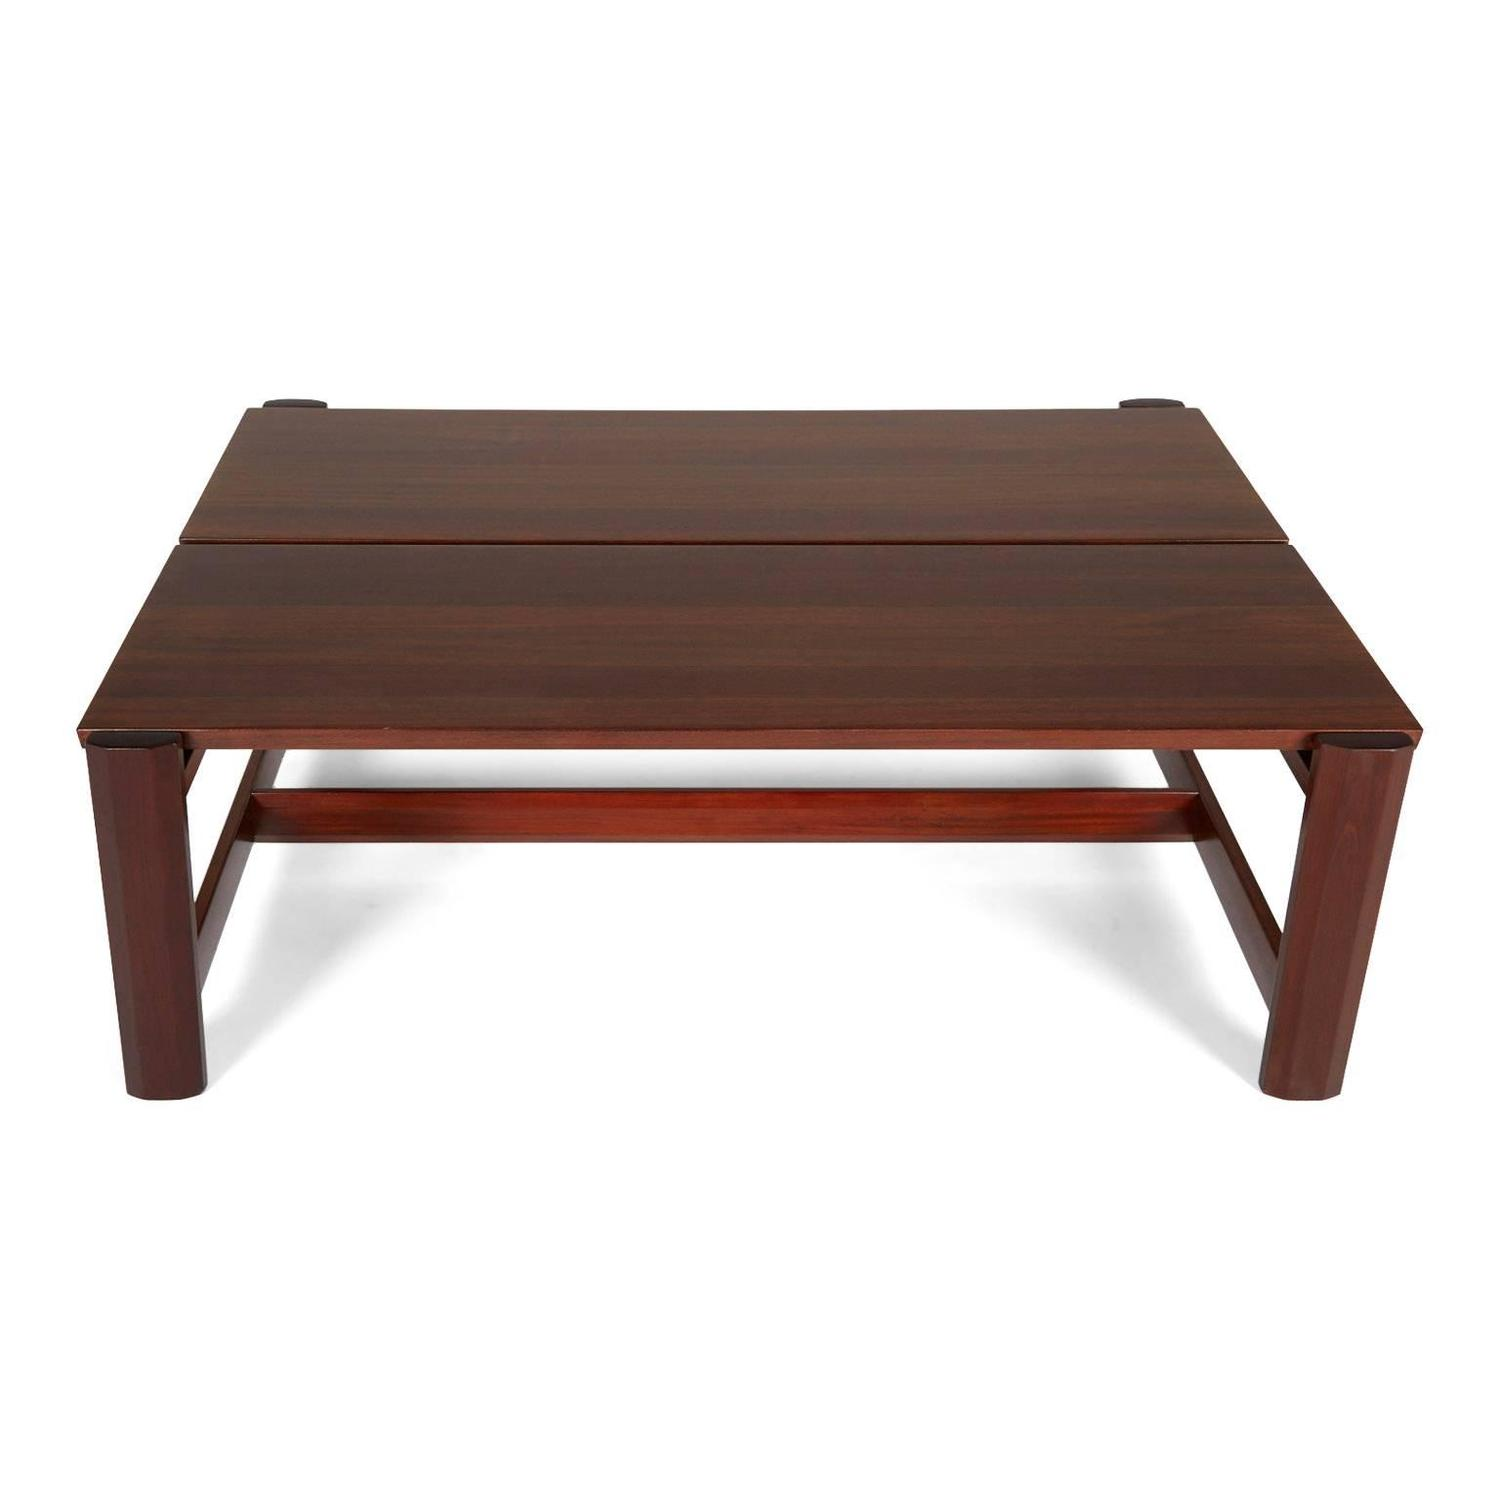 Sergio Rodrigues Large Mahogany Coffee Table For Oca Brazil For Sale At 1stdibs